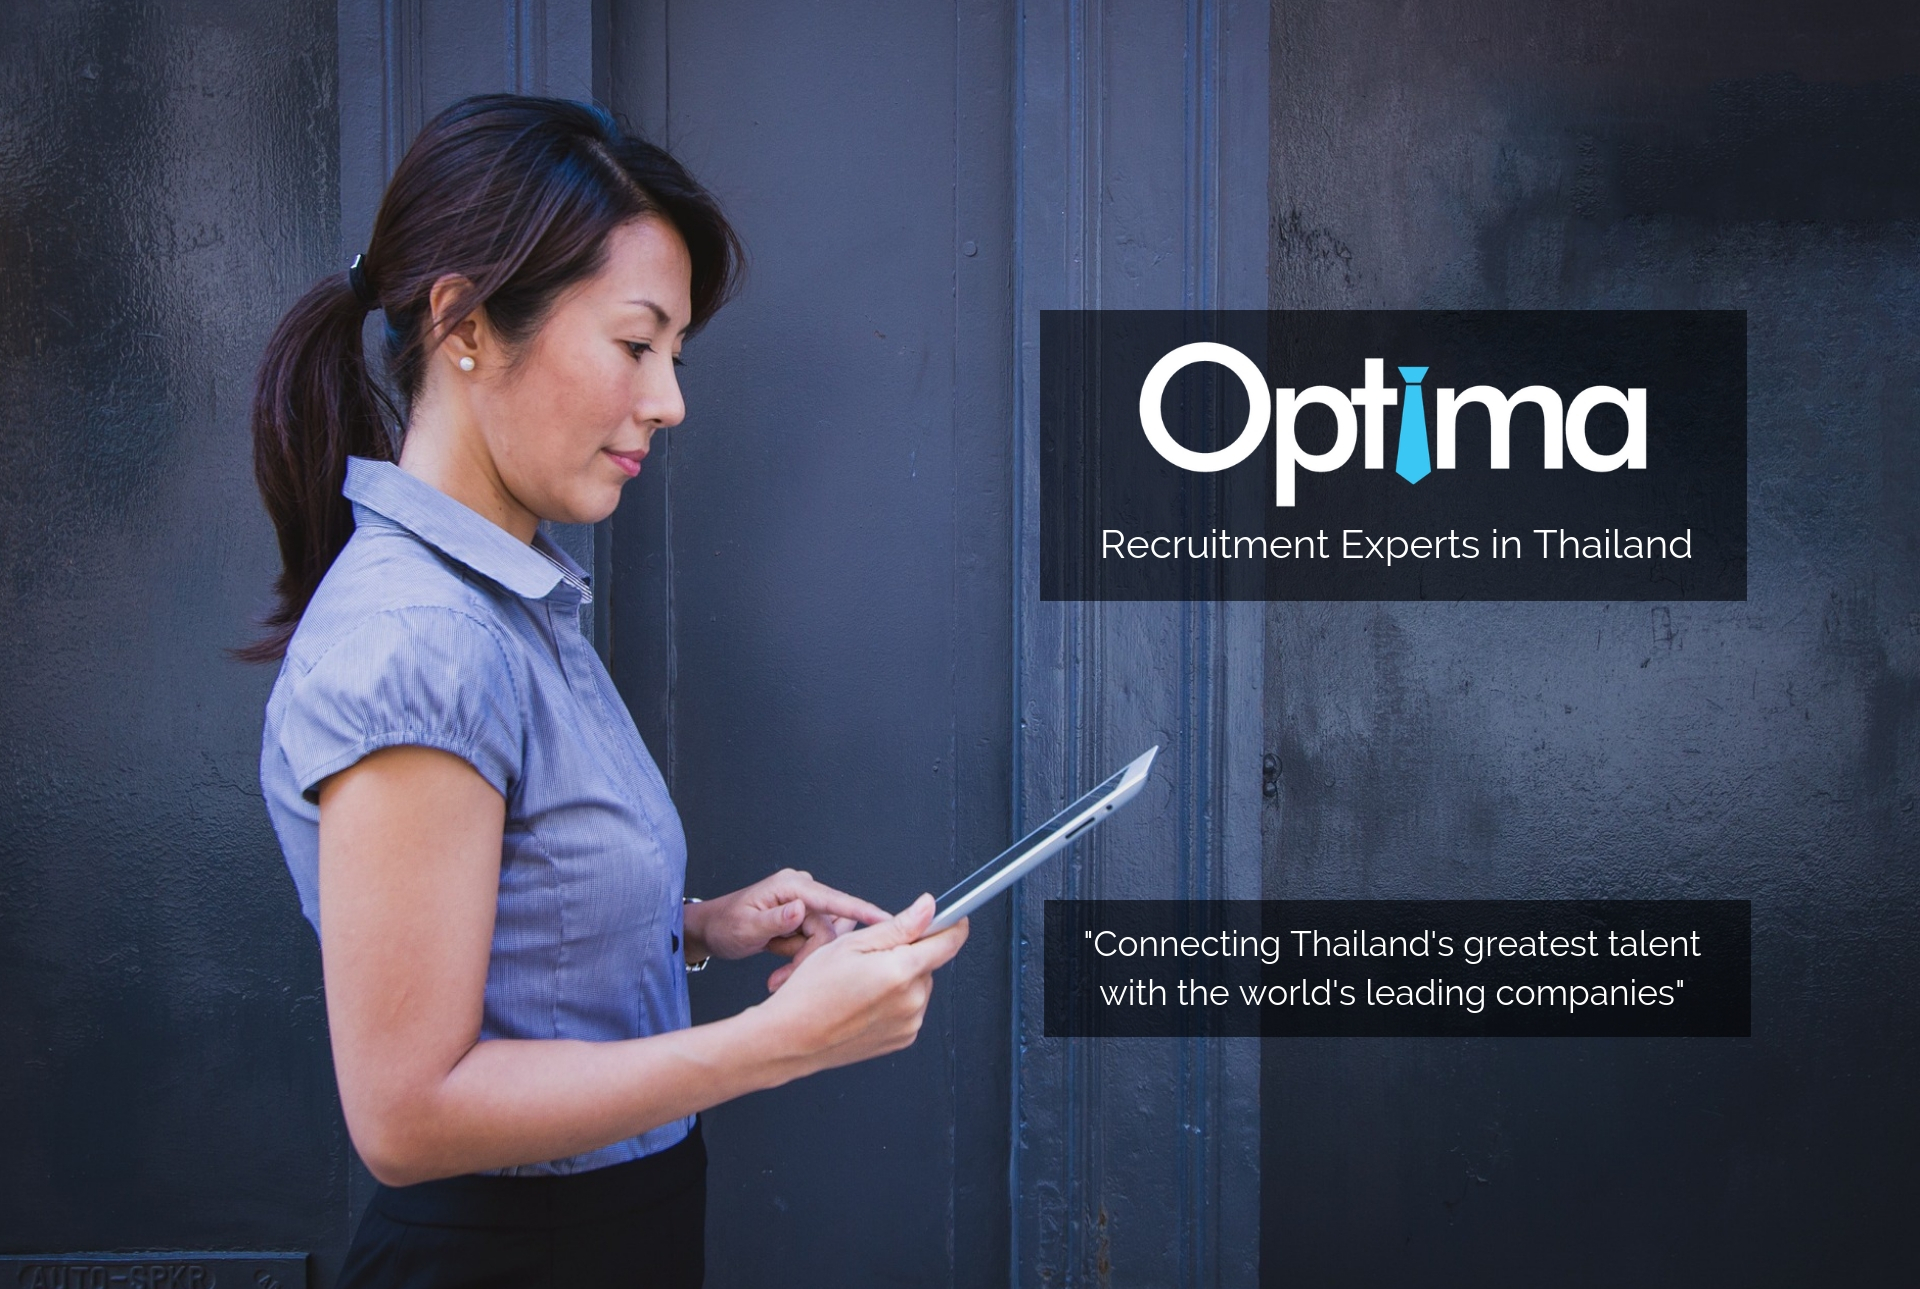 Optima Search - Recruitment Experts in Thailand